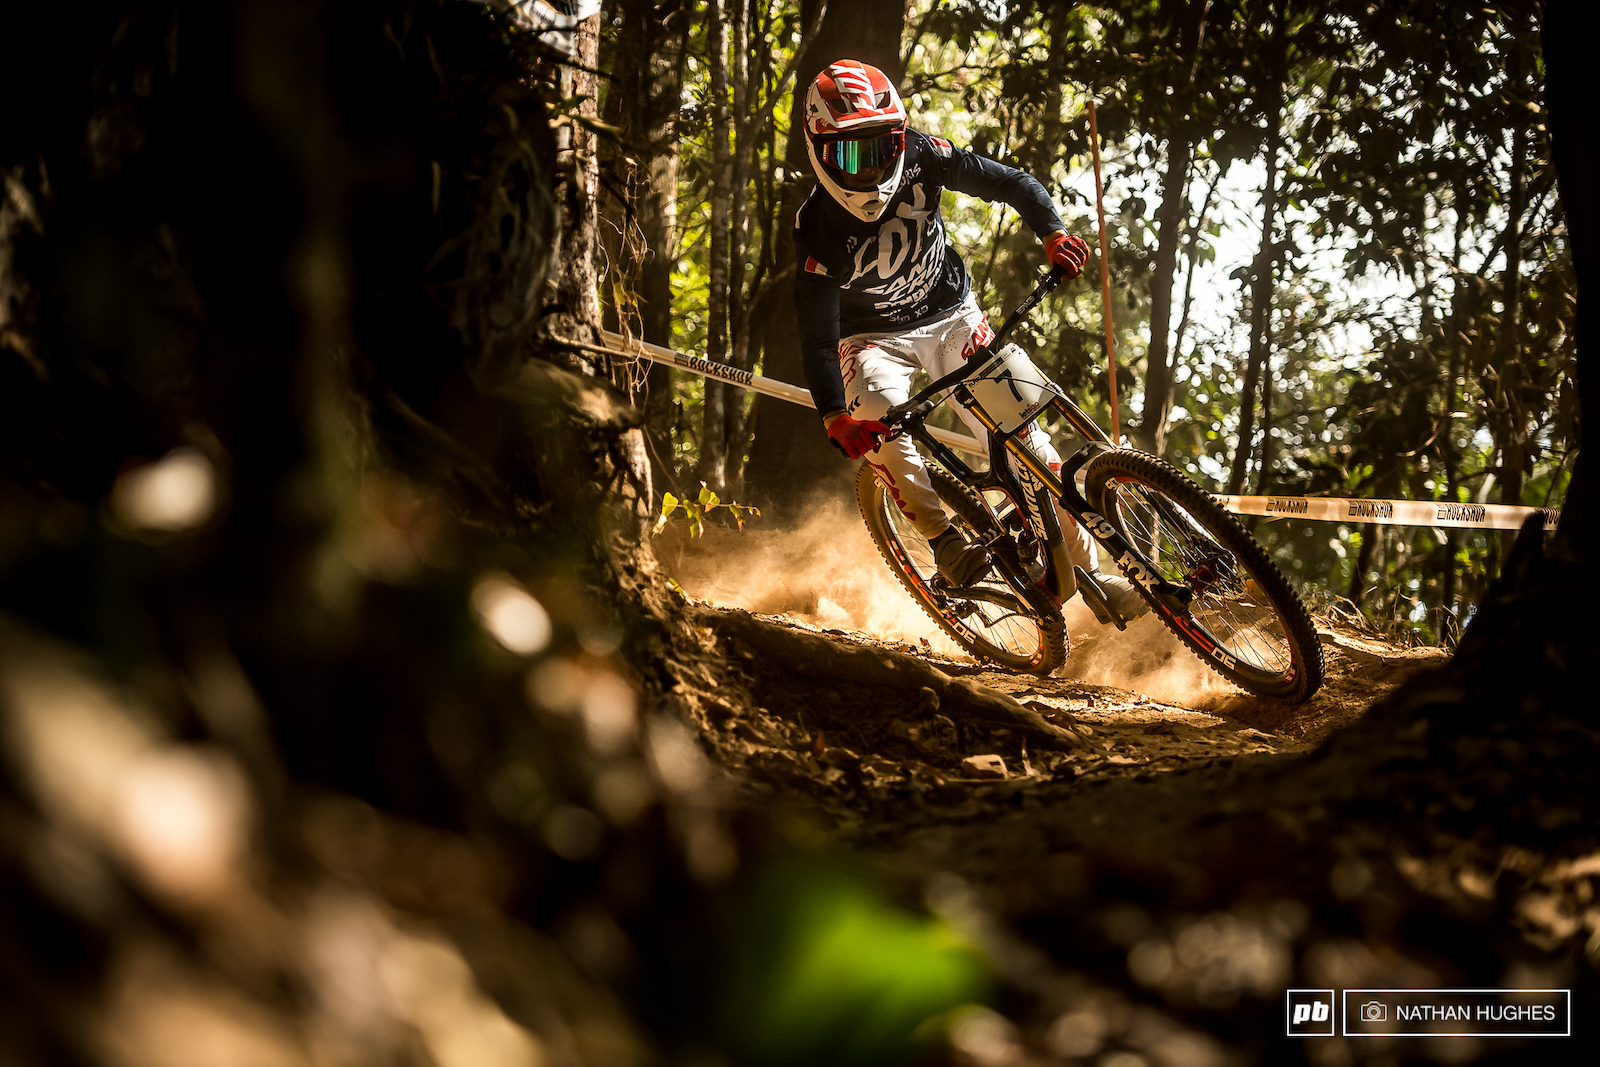 Loris Vergier looked red-hot quick through a lot of the tight spots this afternoon.